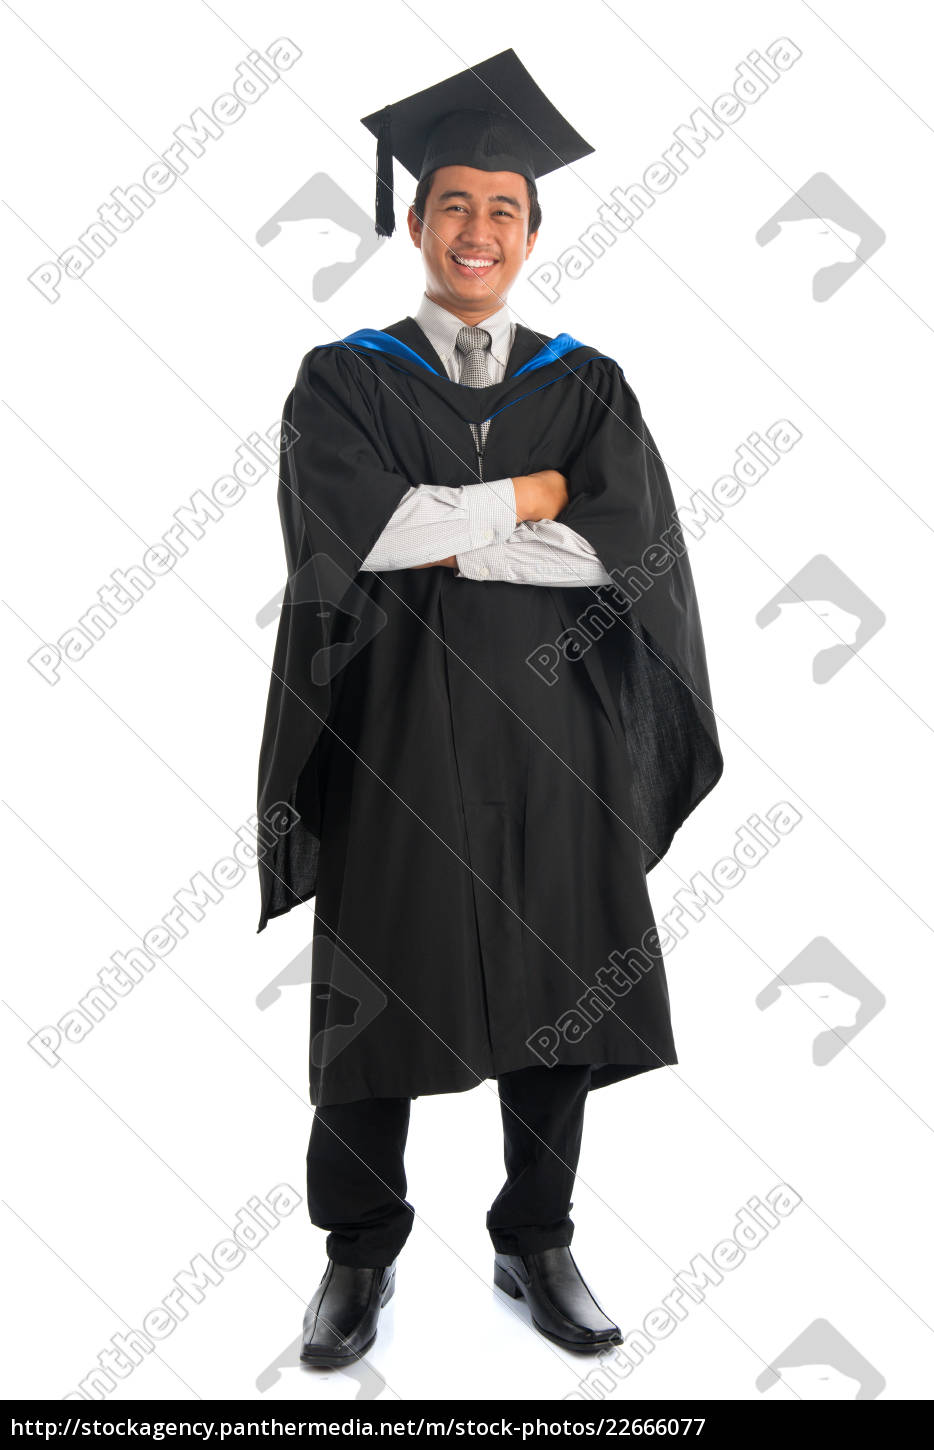 full, length, university, student, graduation - 22666077